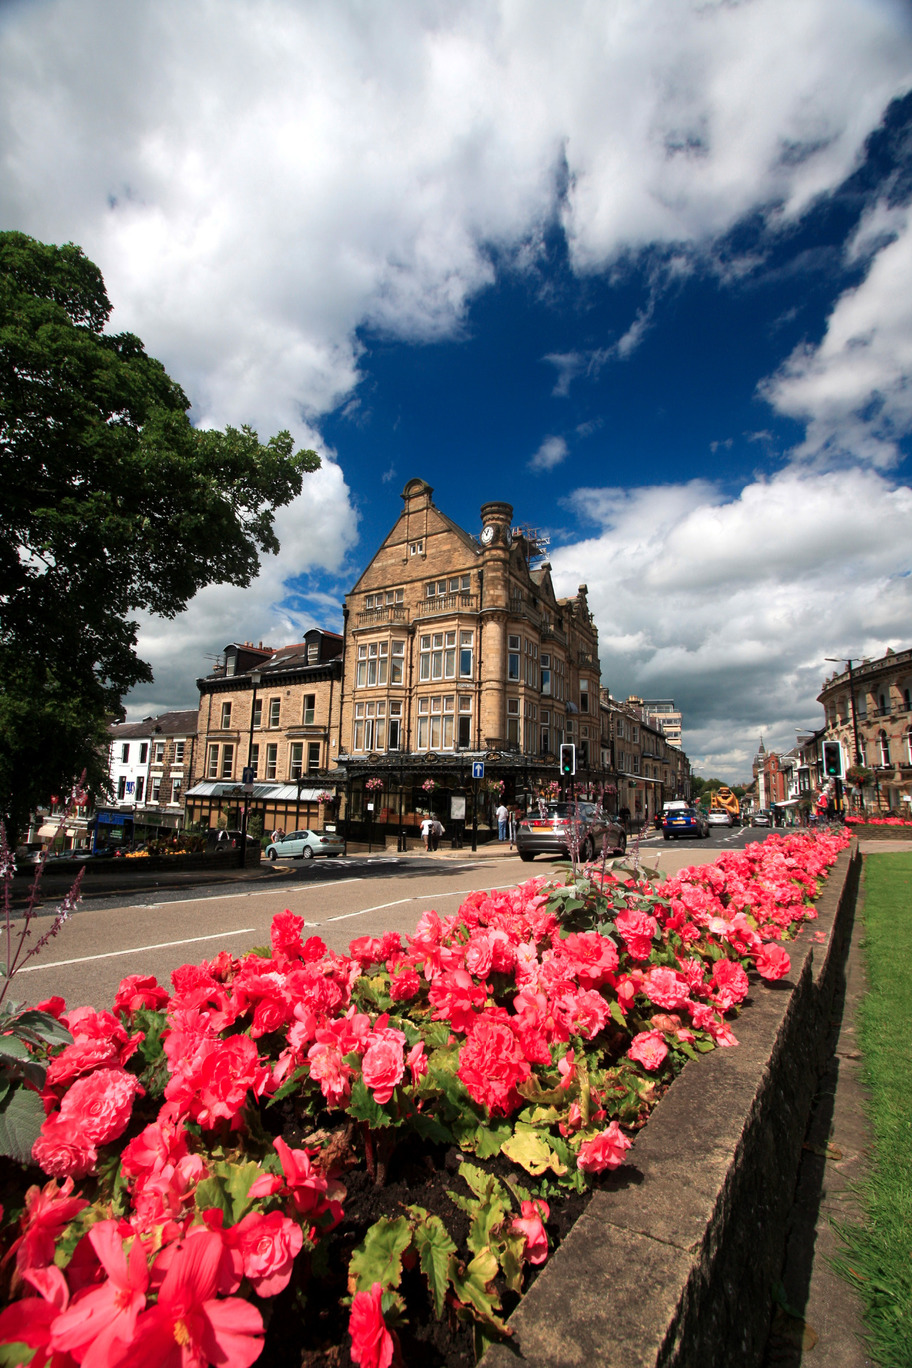 Harrogate Bettys Parliament Street